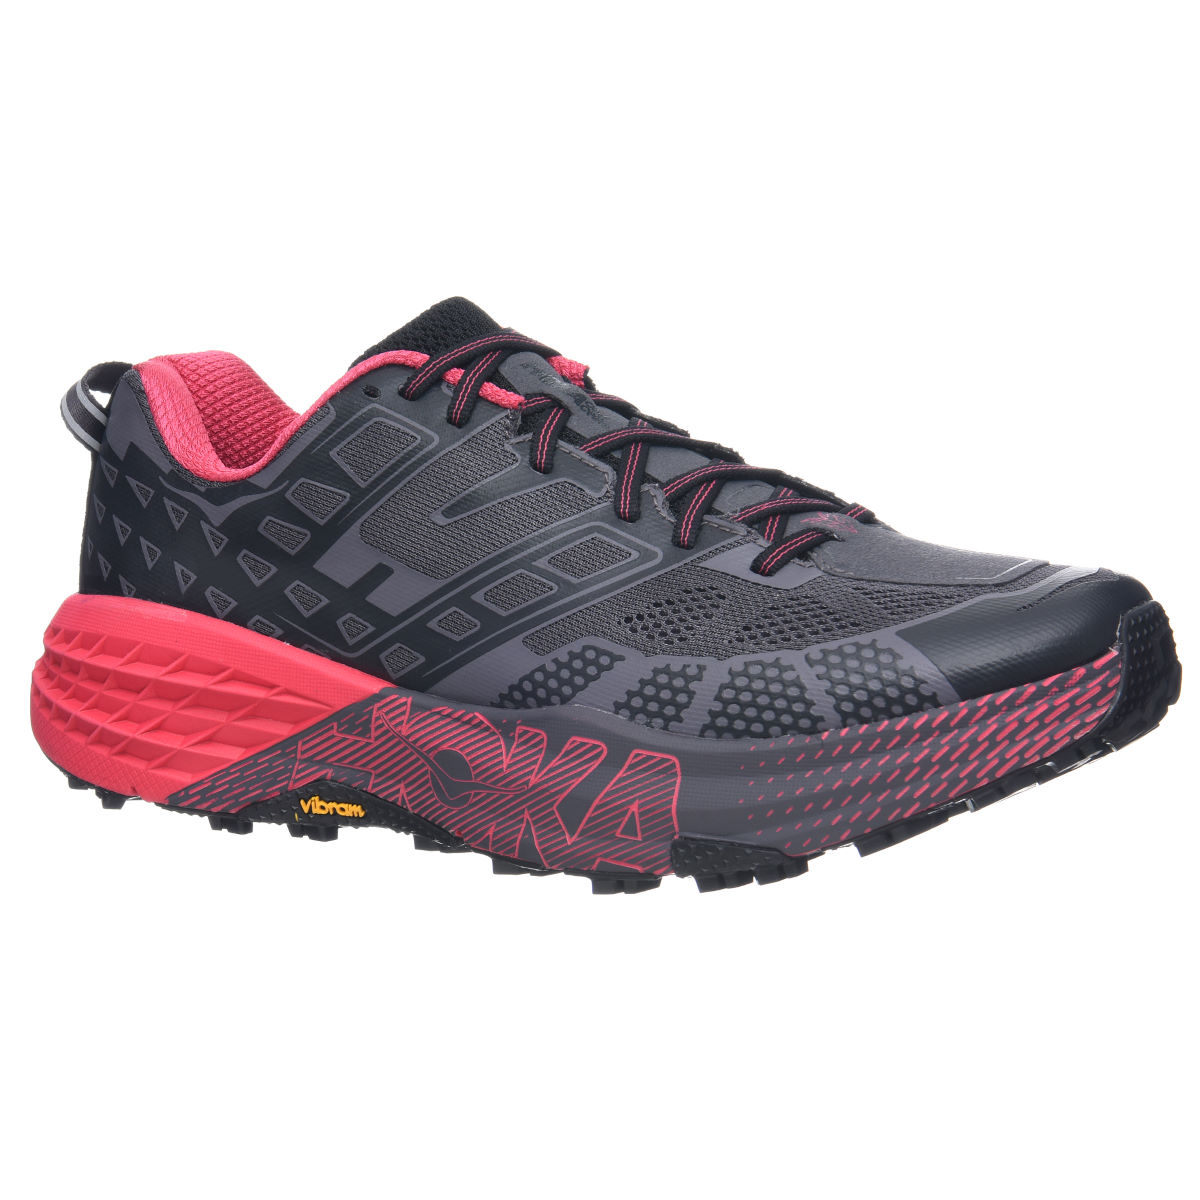 Chaussures Femme Hoka One One Speedgoat 2 - UK 5 Black/Azalea